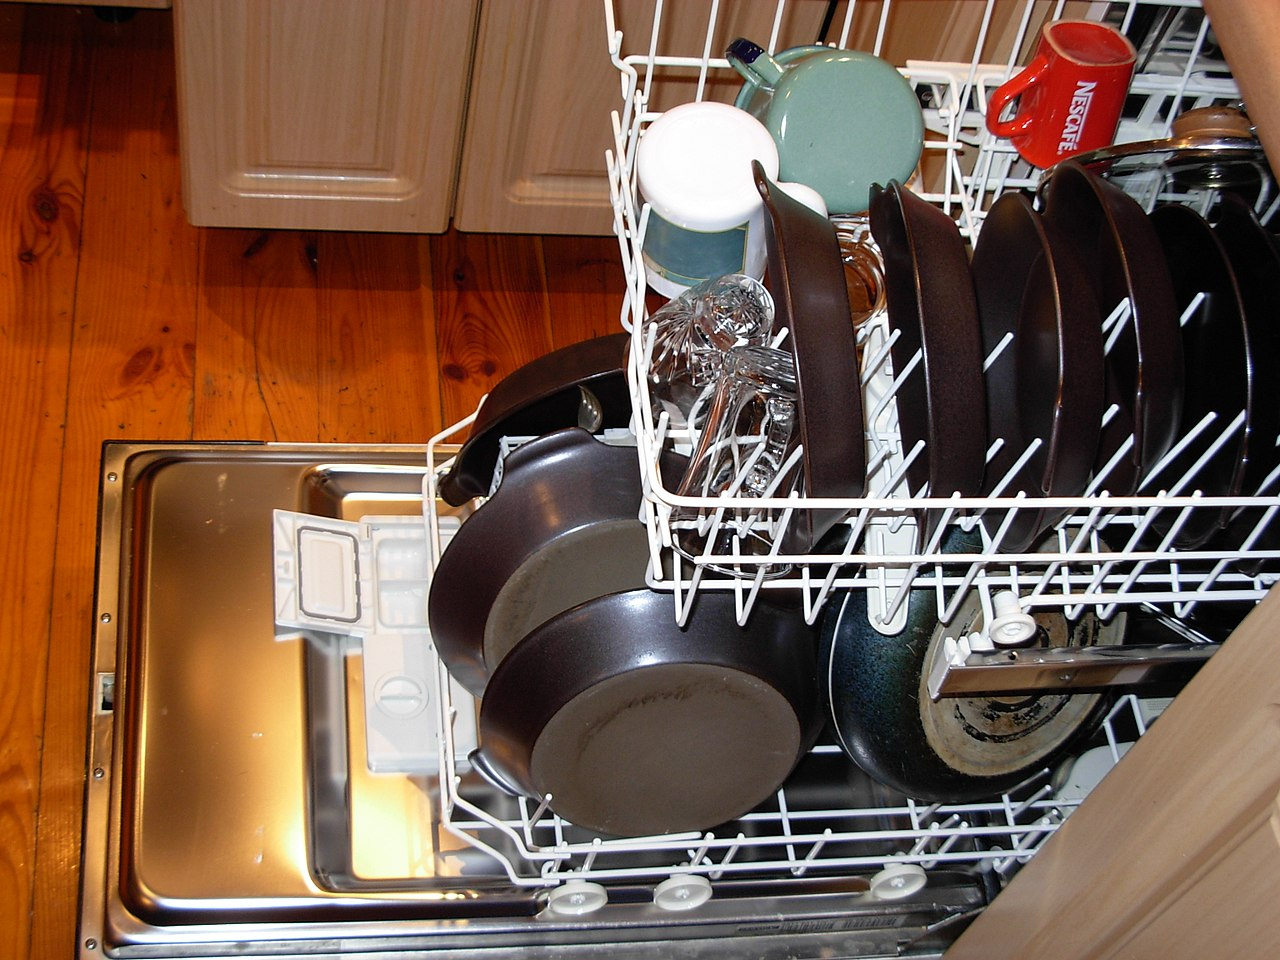 https://commons.wikimedia.org/wiki/File:Dishwasher_with_dishes.JPG